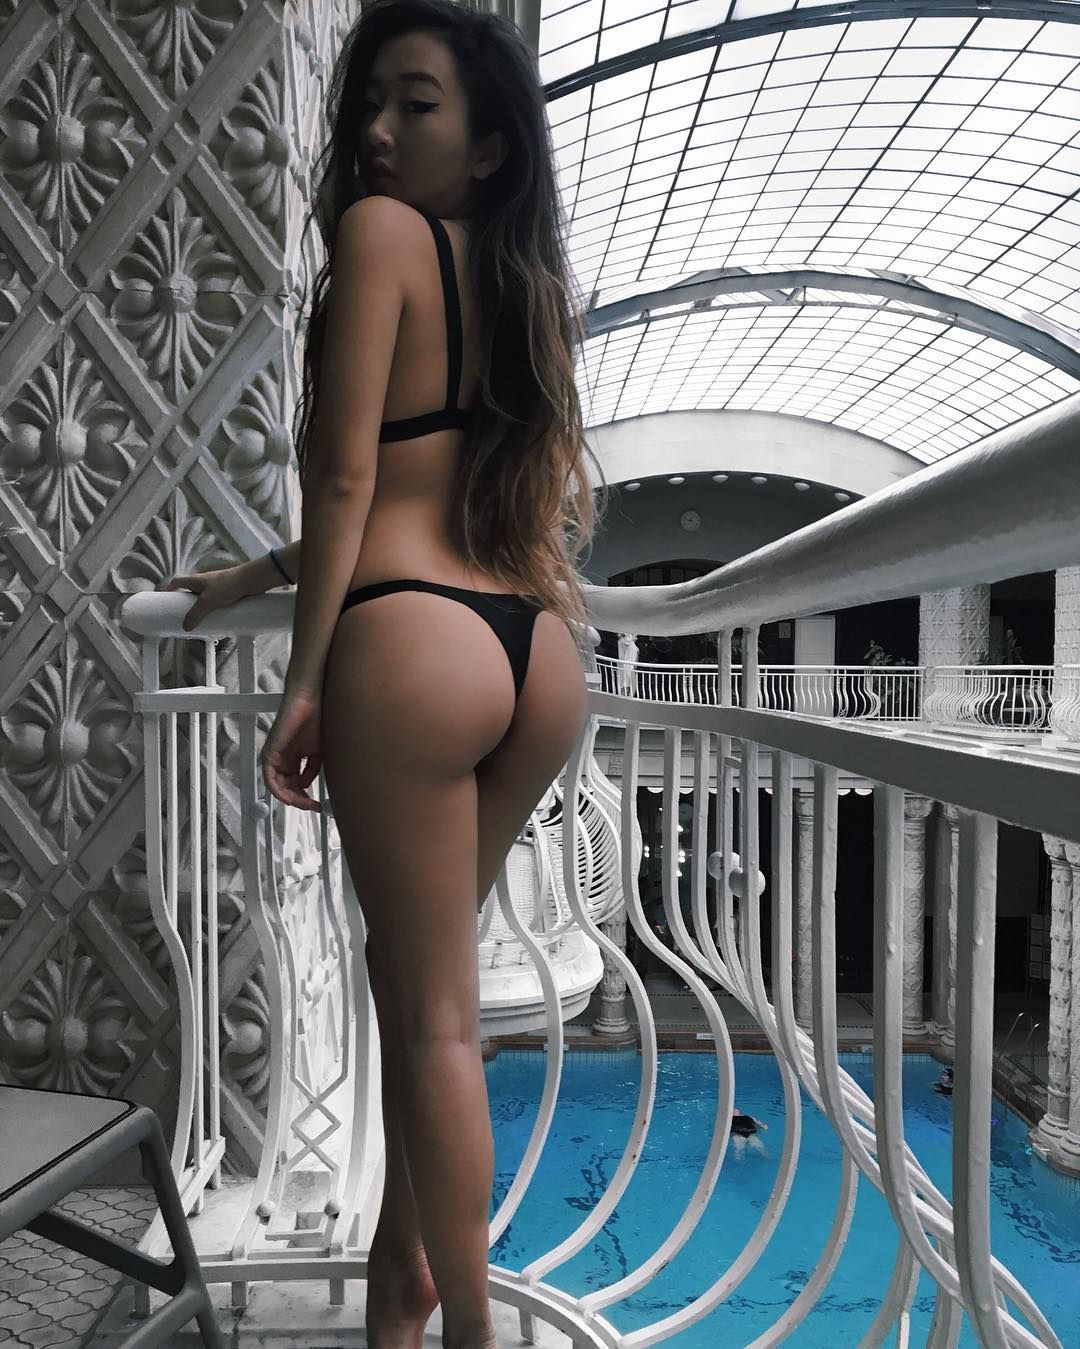 REALLY gonna asian ass nice she hot